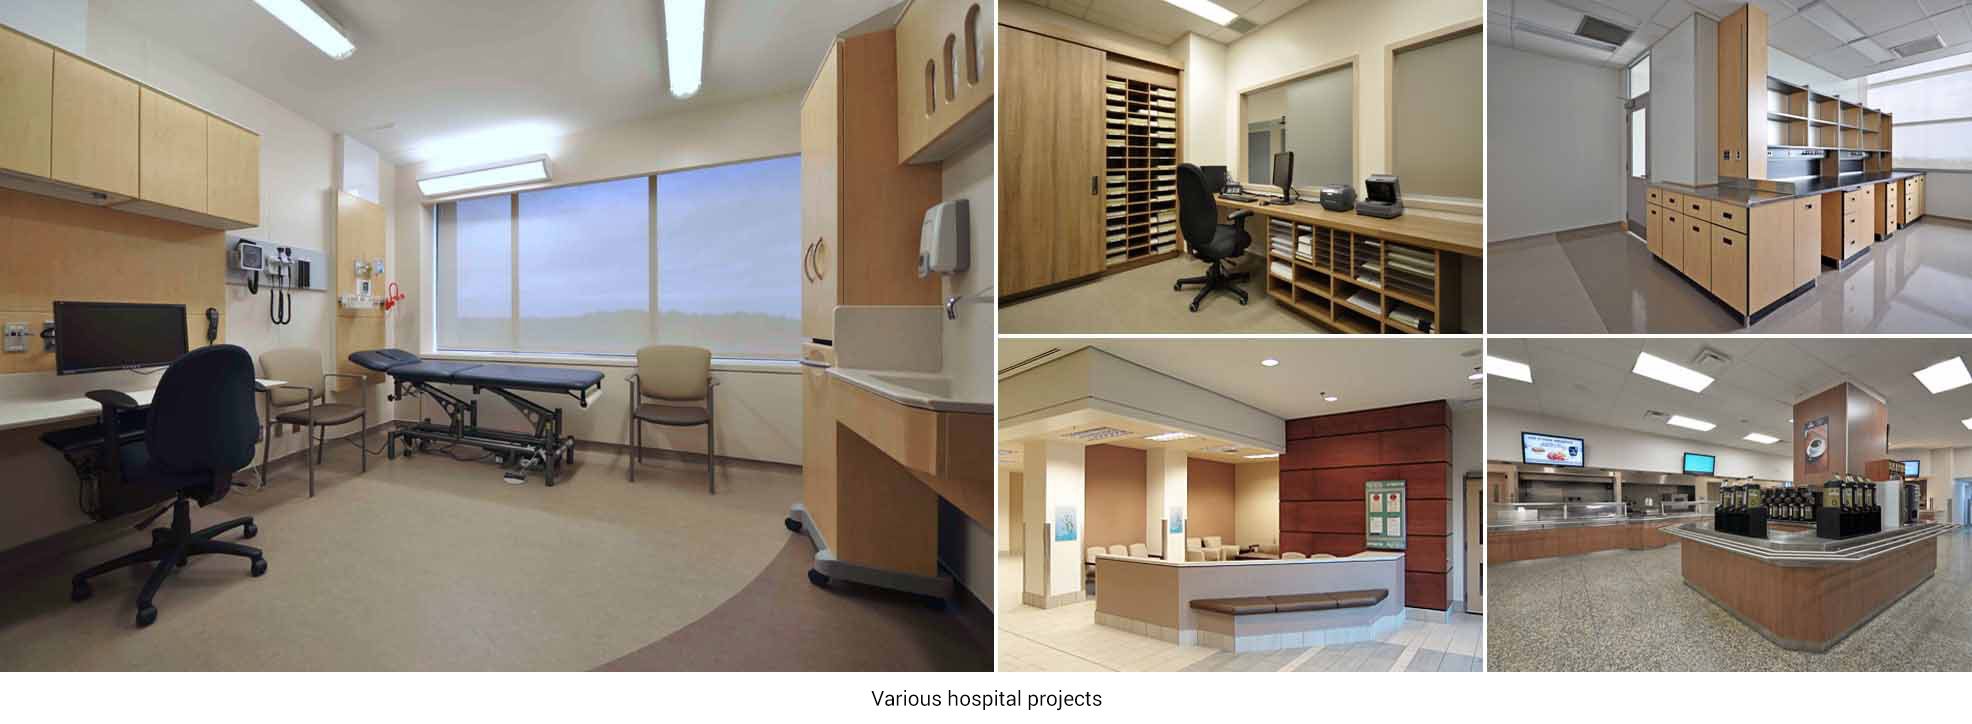 Various hospital projects